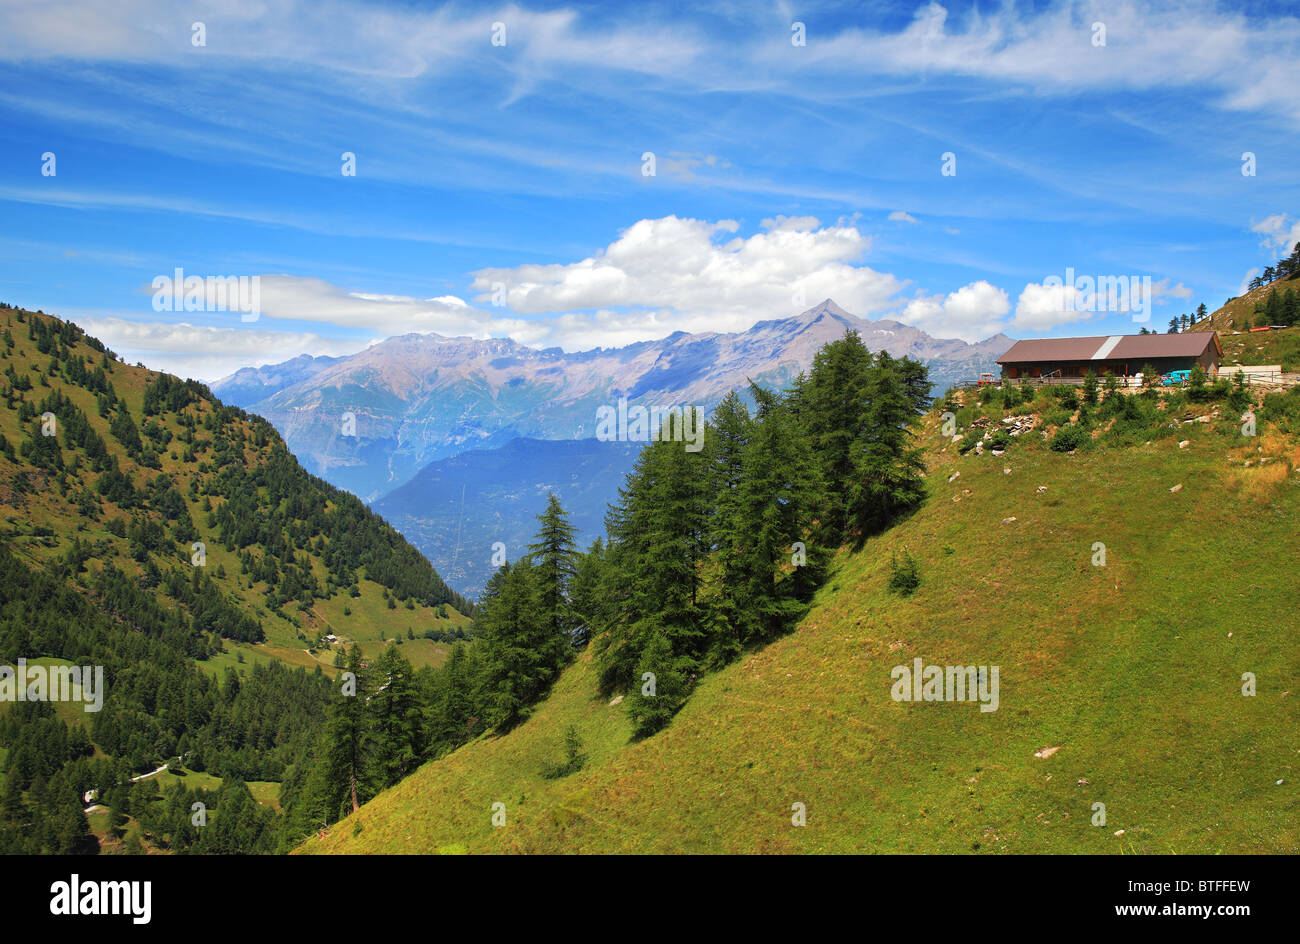 View on hills and peaks of Alps in northern Italy. - Stock Image